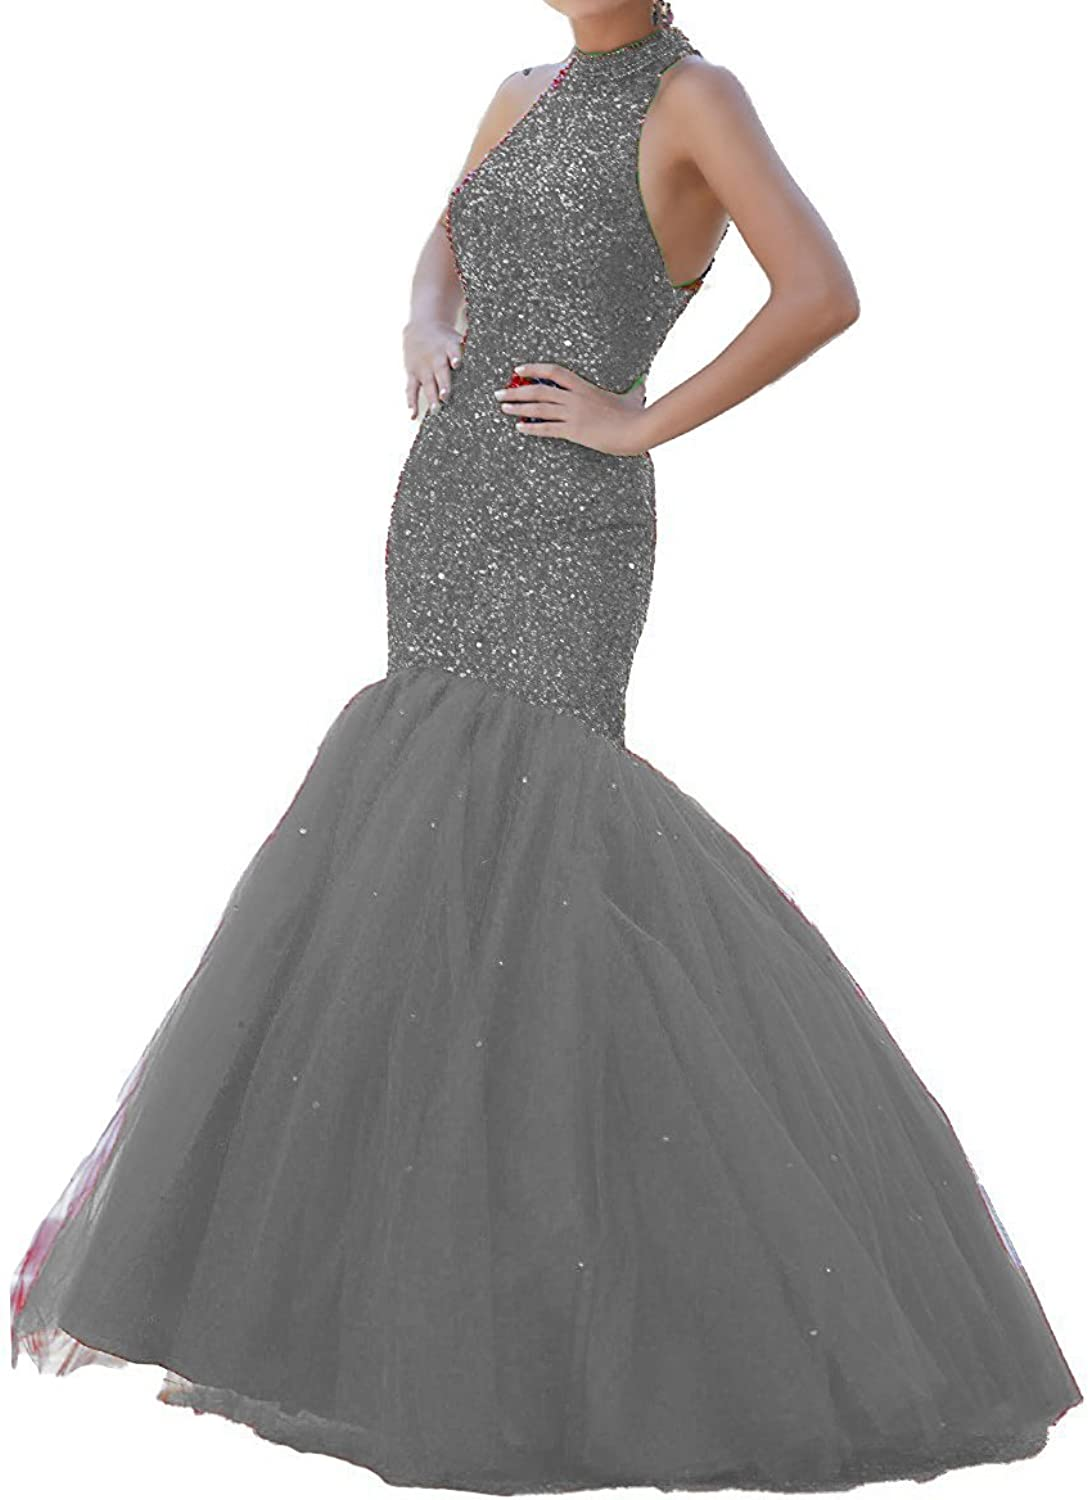 Sound of blossoming Halter Beads Mermaid Prom Dress Keyhole Back High Neck Tulle Long Evening Formal Party Gown 024